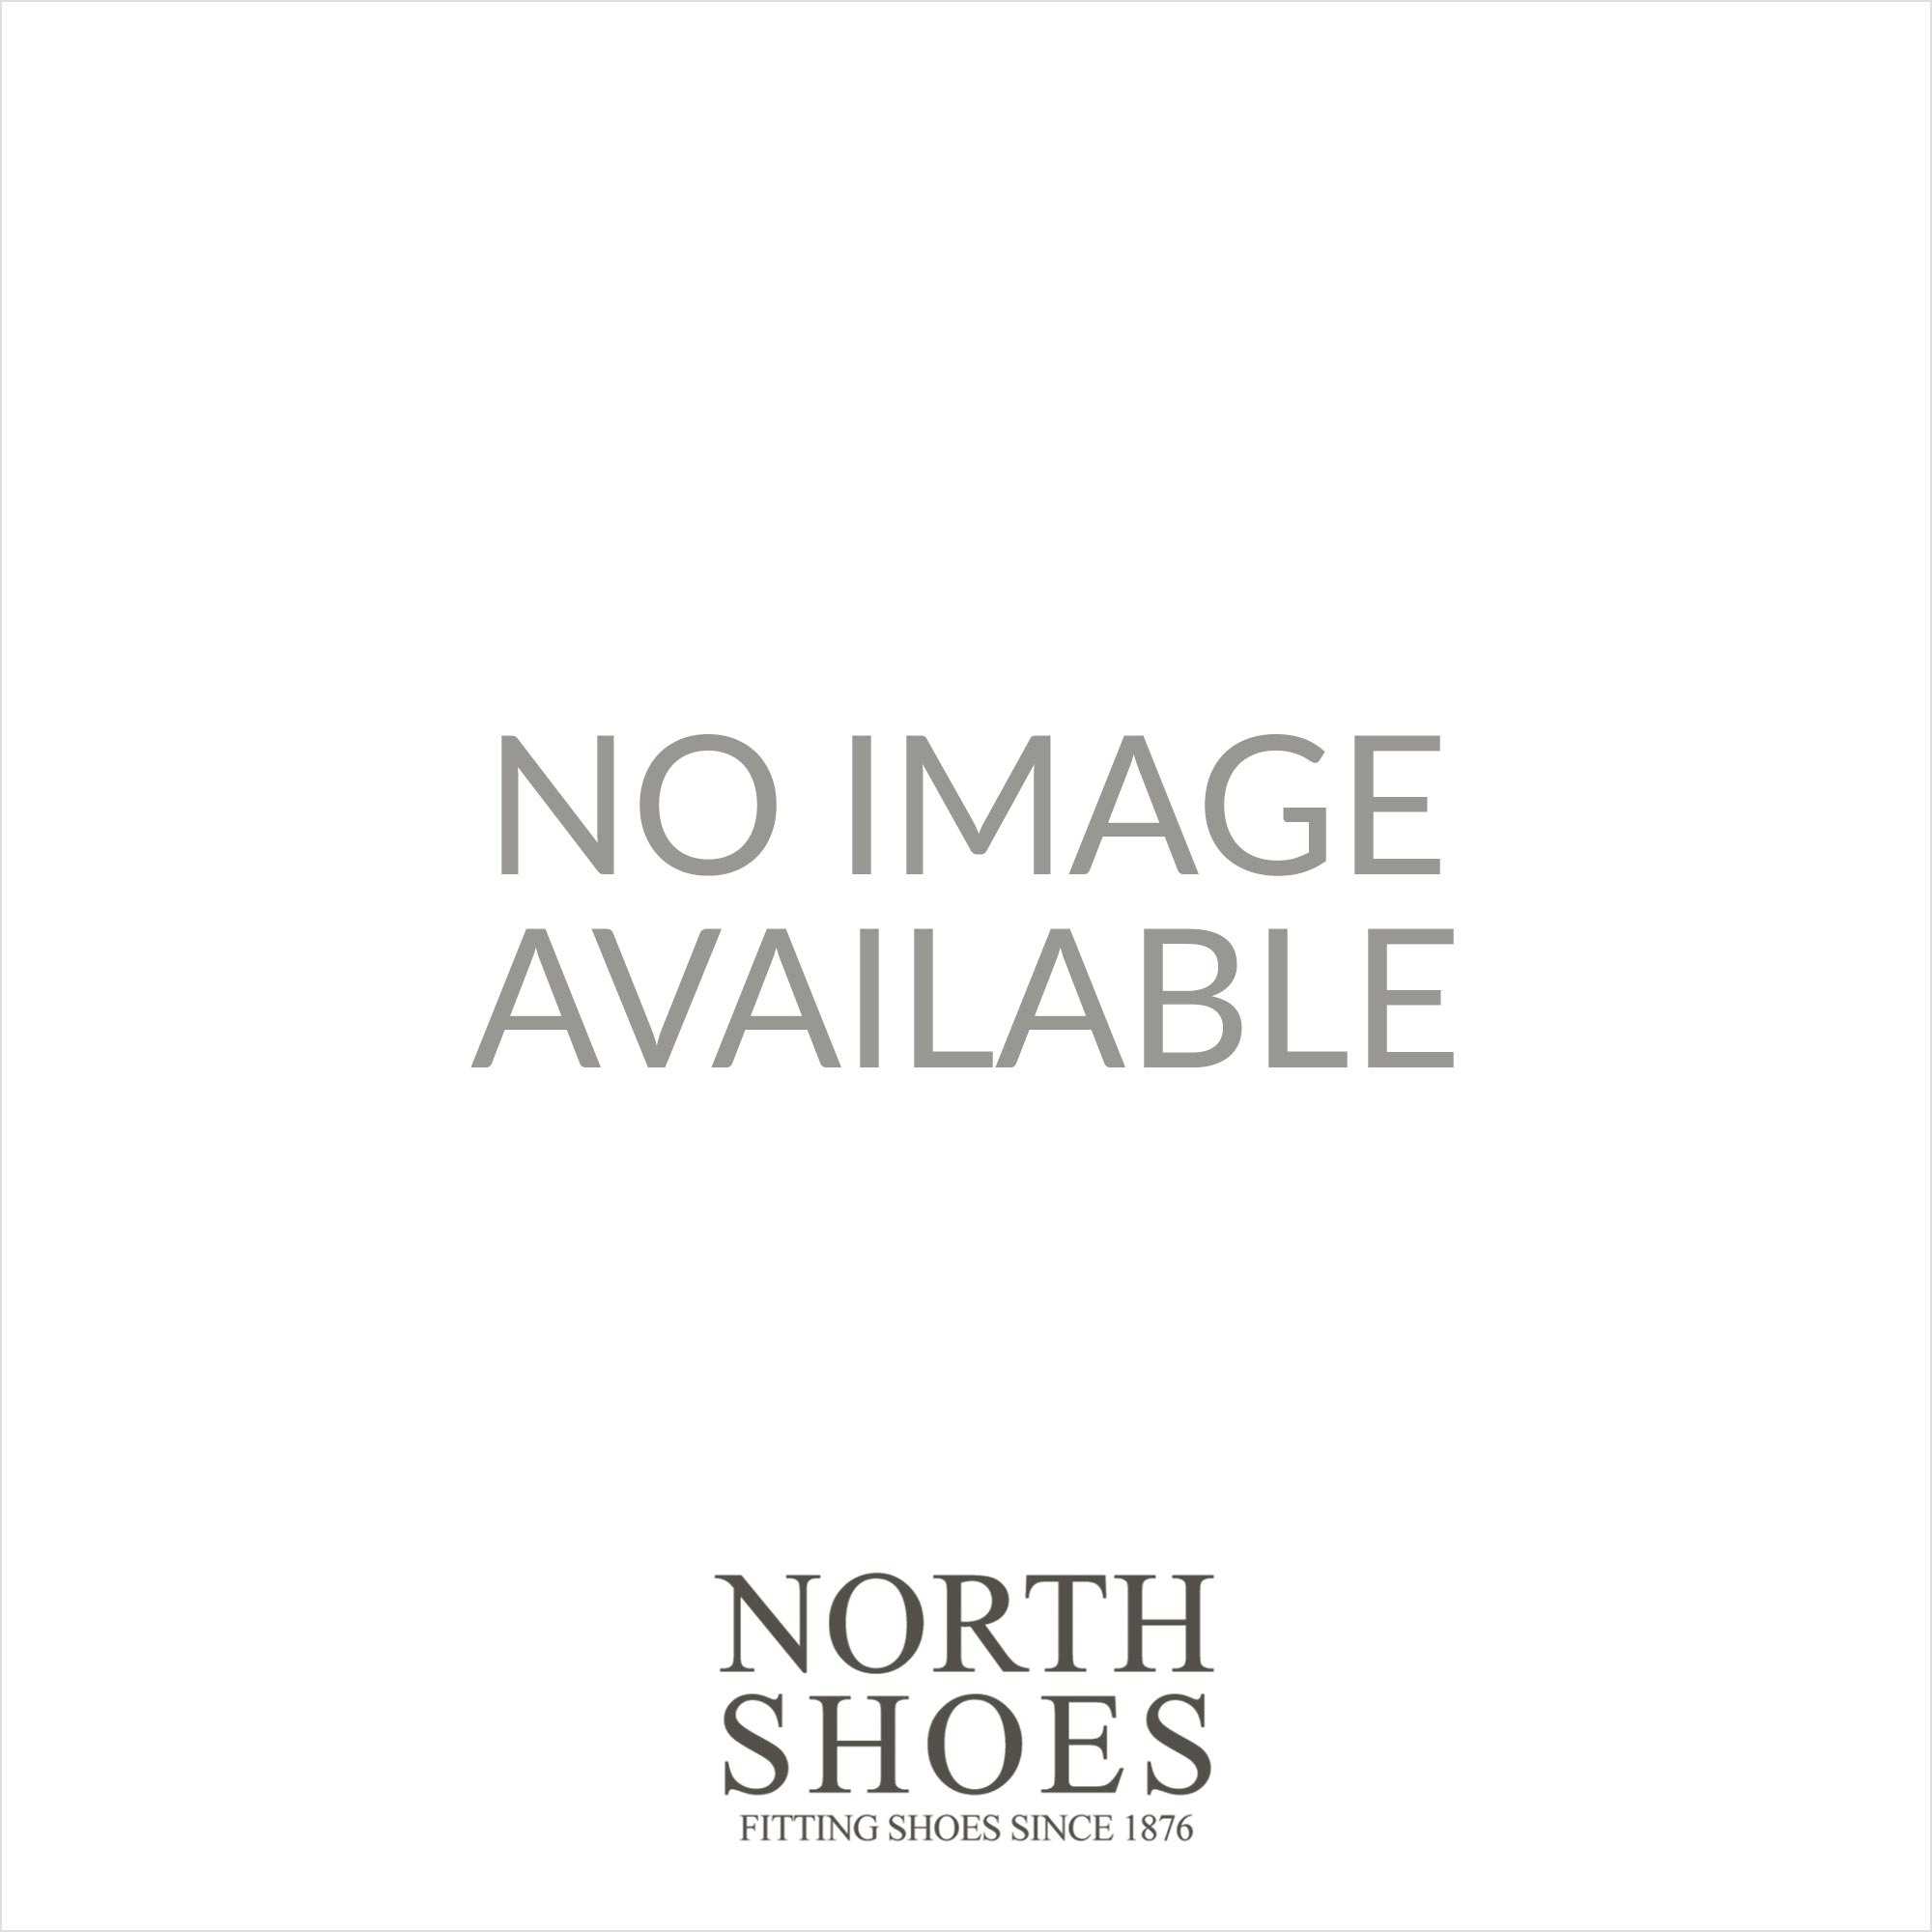 d7a68ae3ed5 Skechers 10771L Metallic Rose Gold Girls Light Up Lace High Top Trainer -  Skechers from North Shoes UK